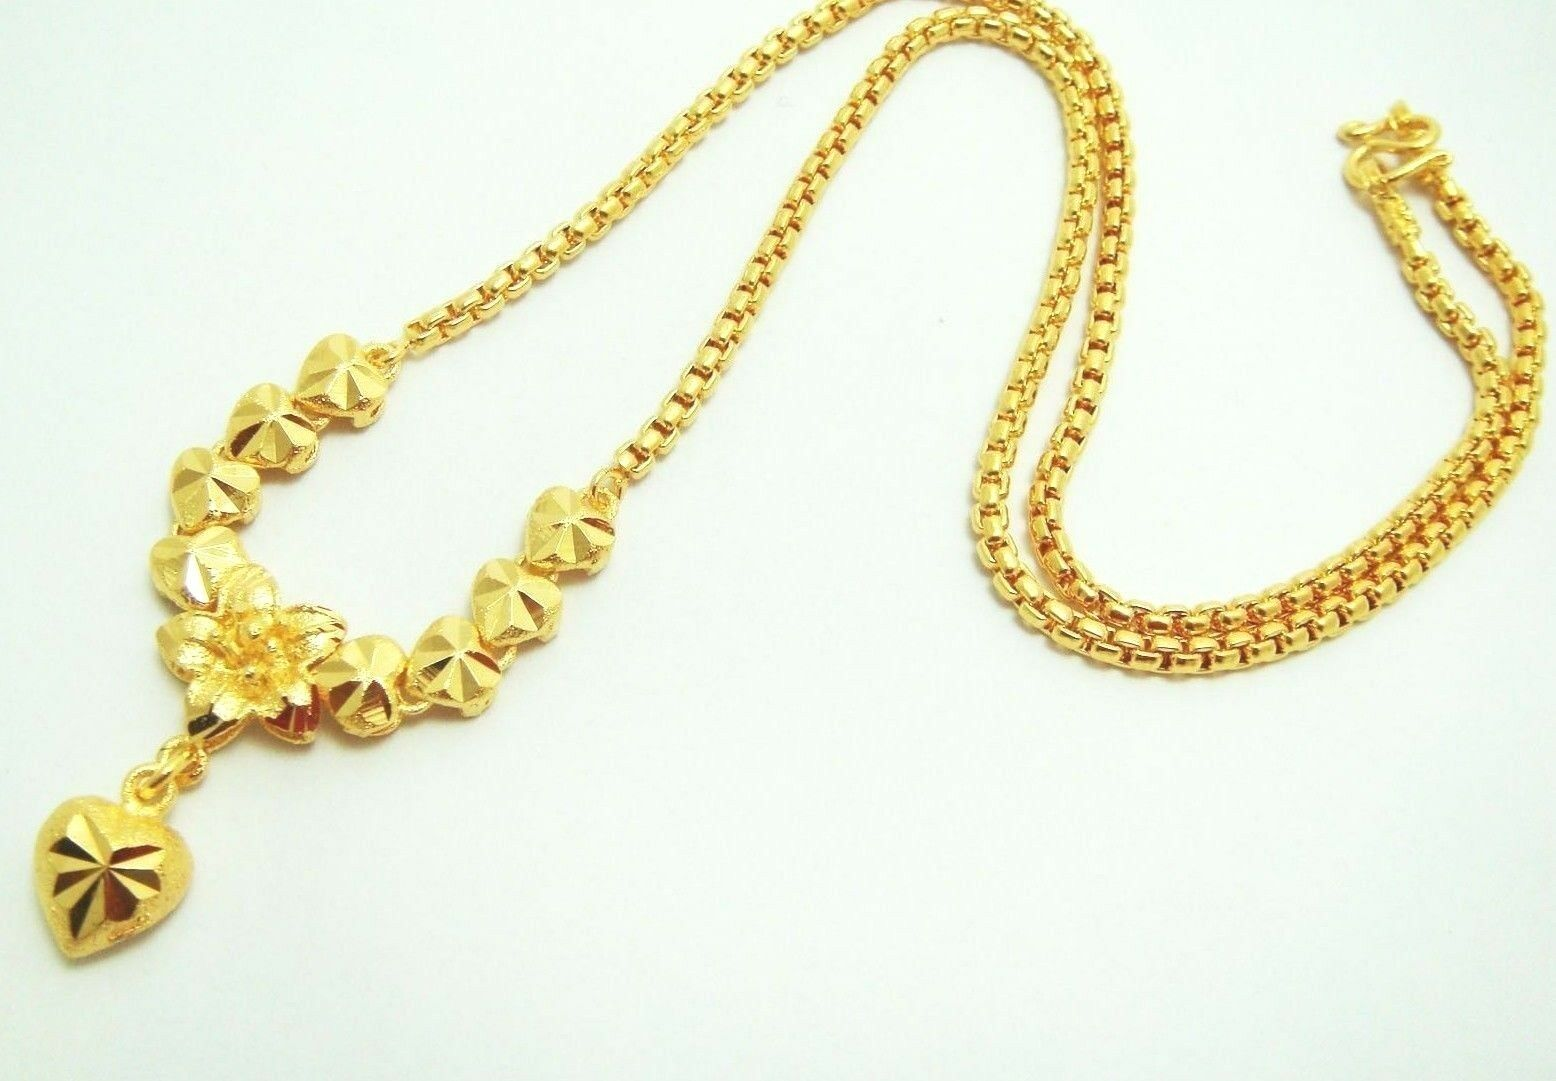 Heart Flower 22k 23k 24k Thai Baht Yellow GP Gold Necklace Jewelry